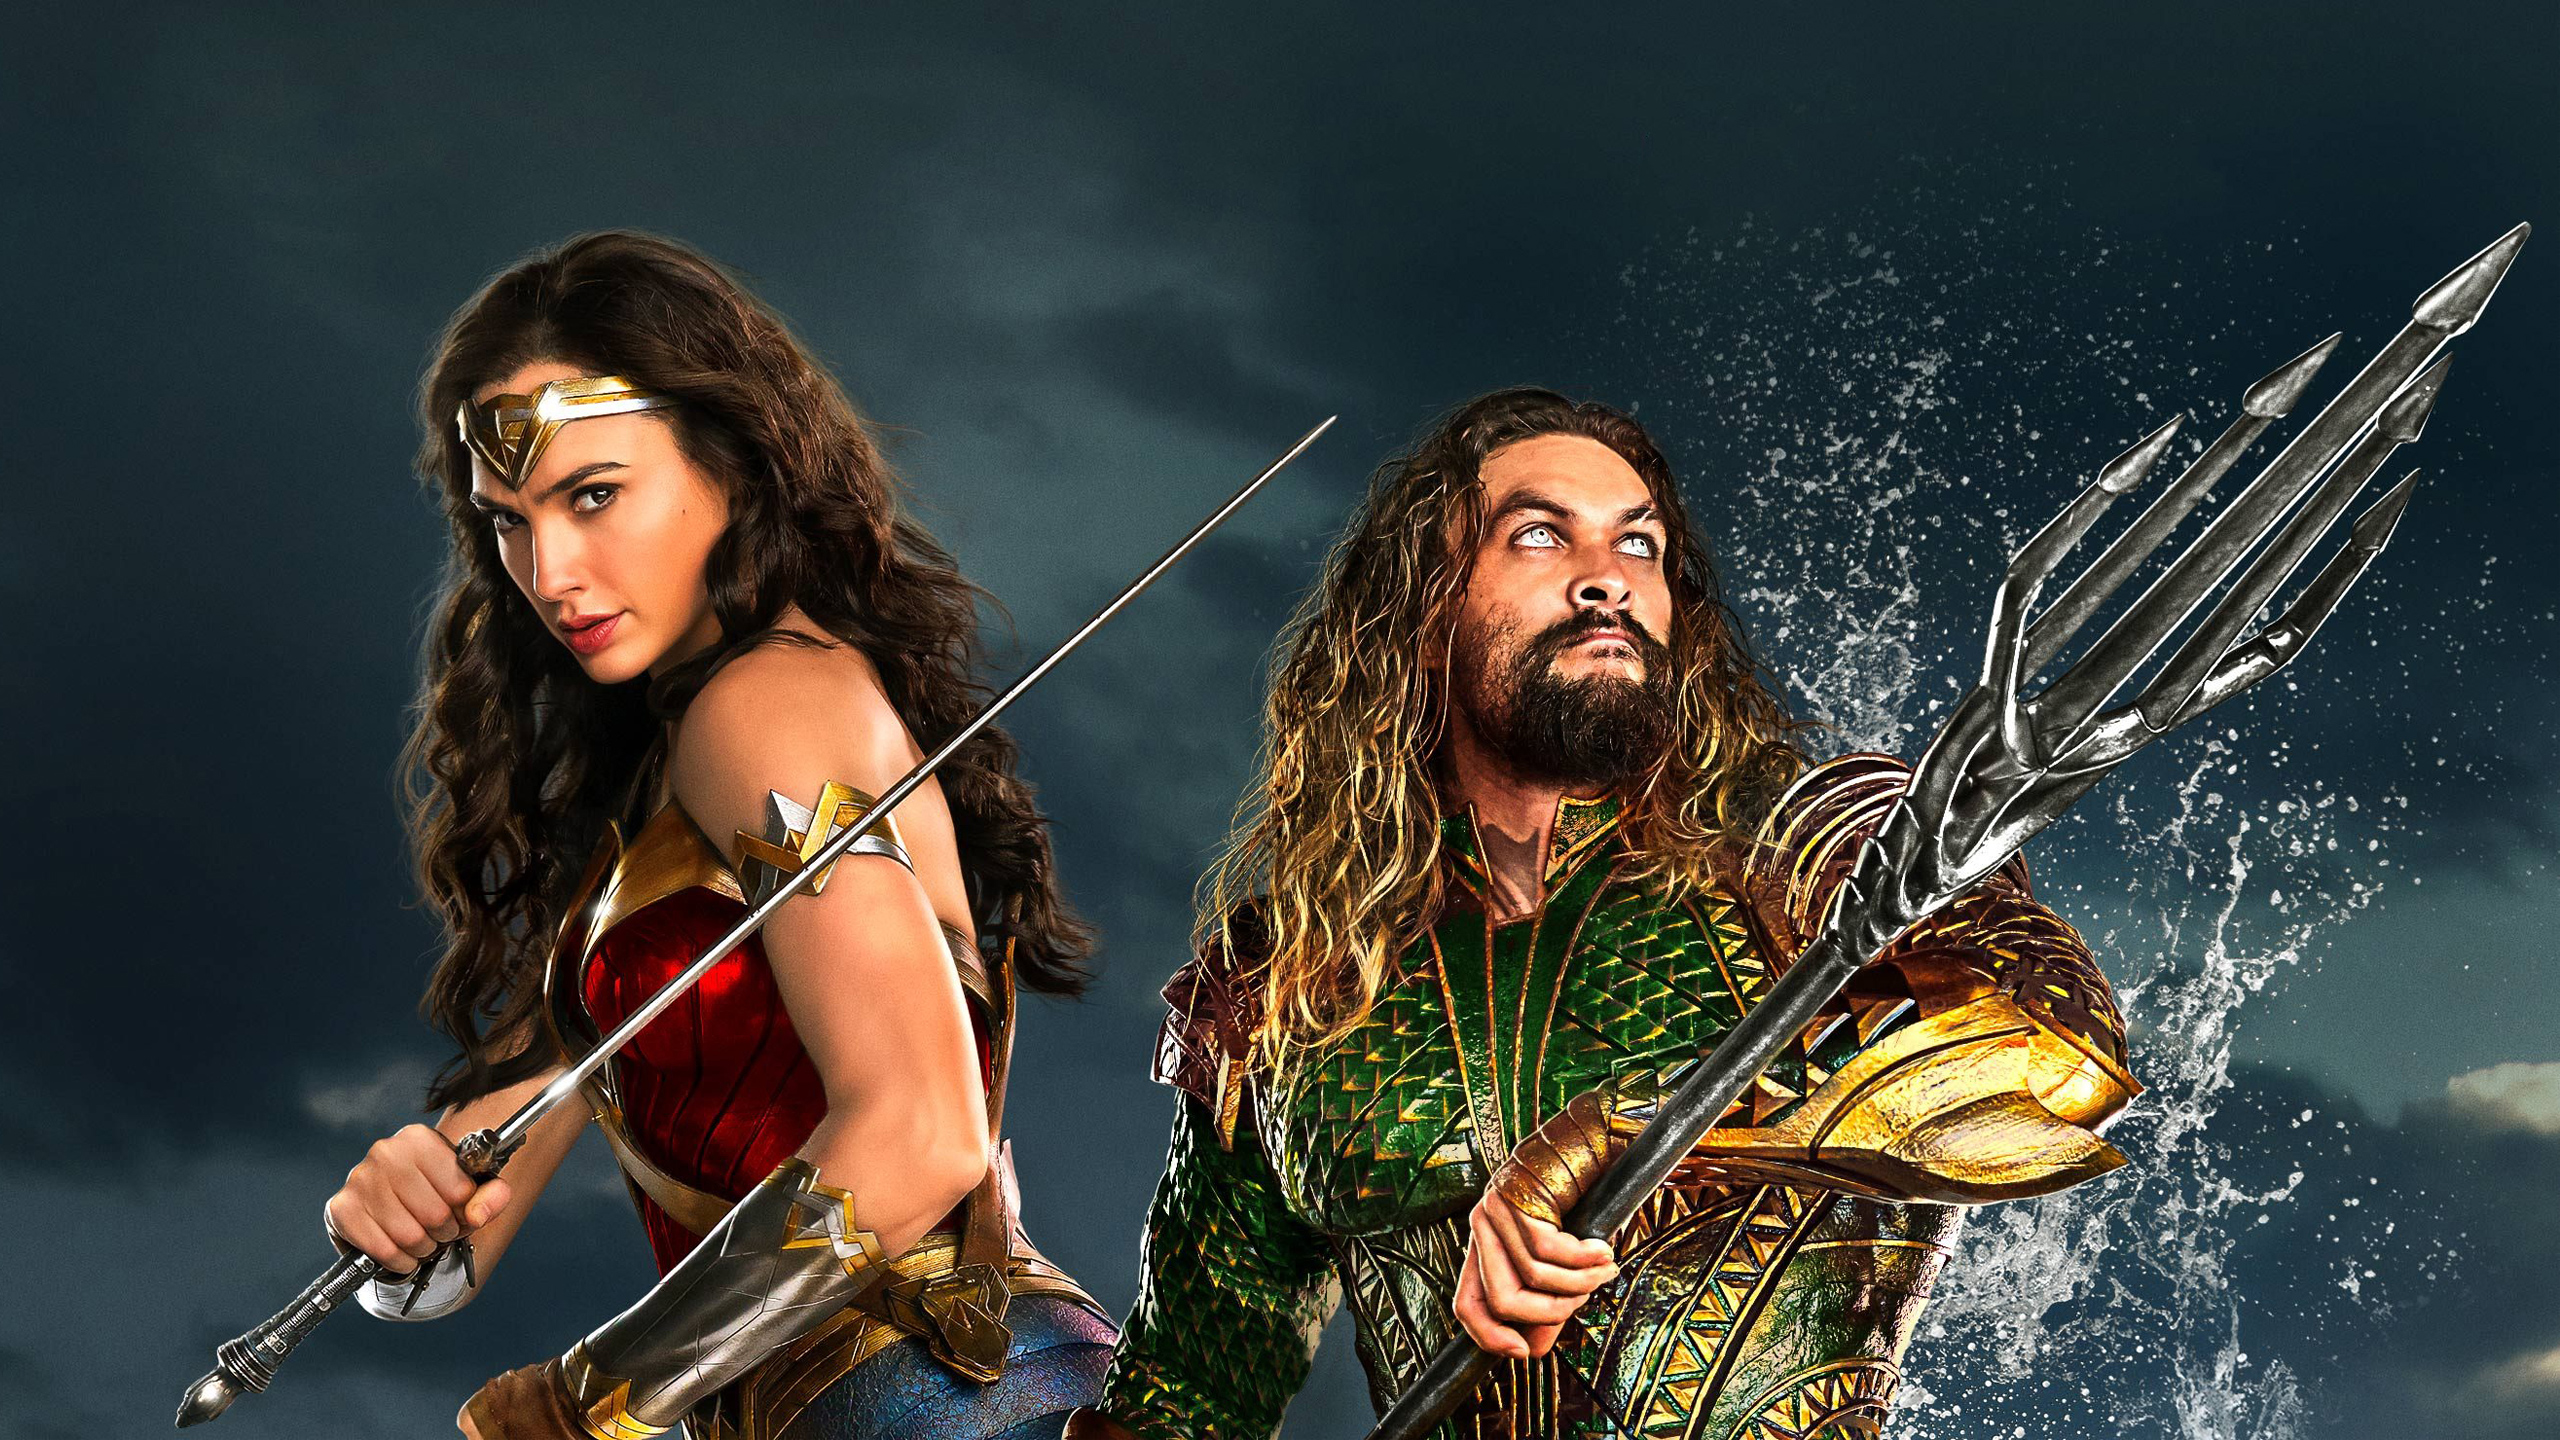 Wonder Woman Aquaman In Justice League Wallpapers Hd Wallpapers